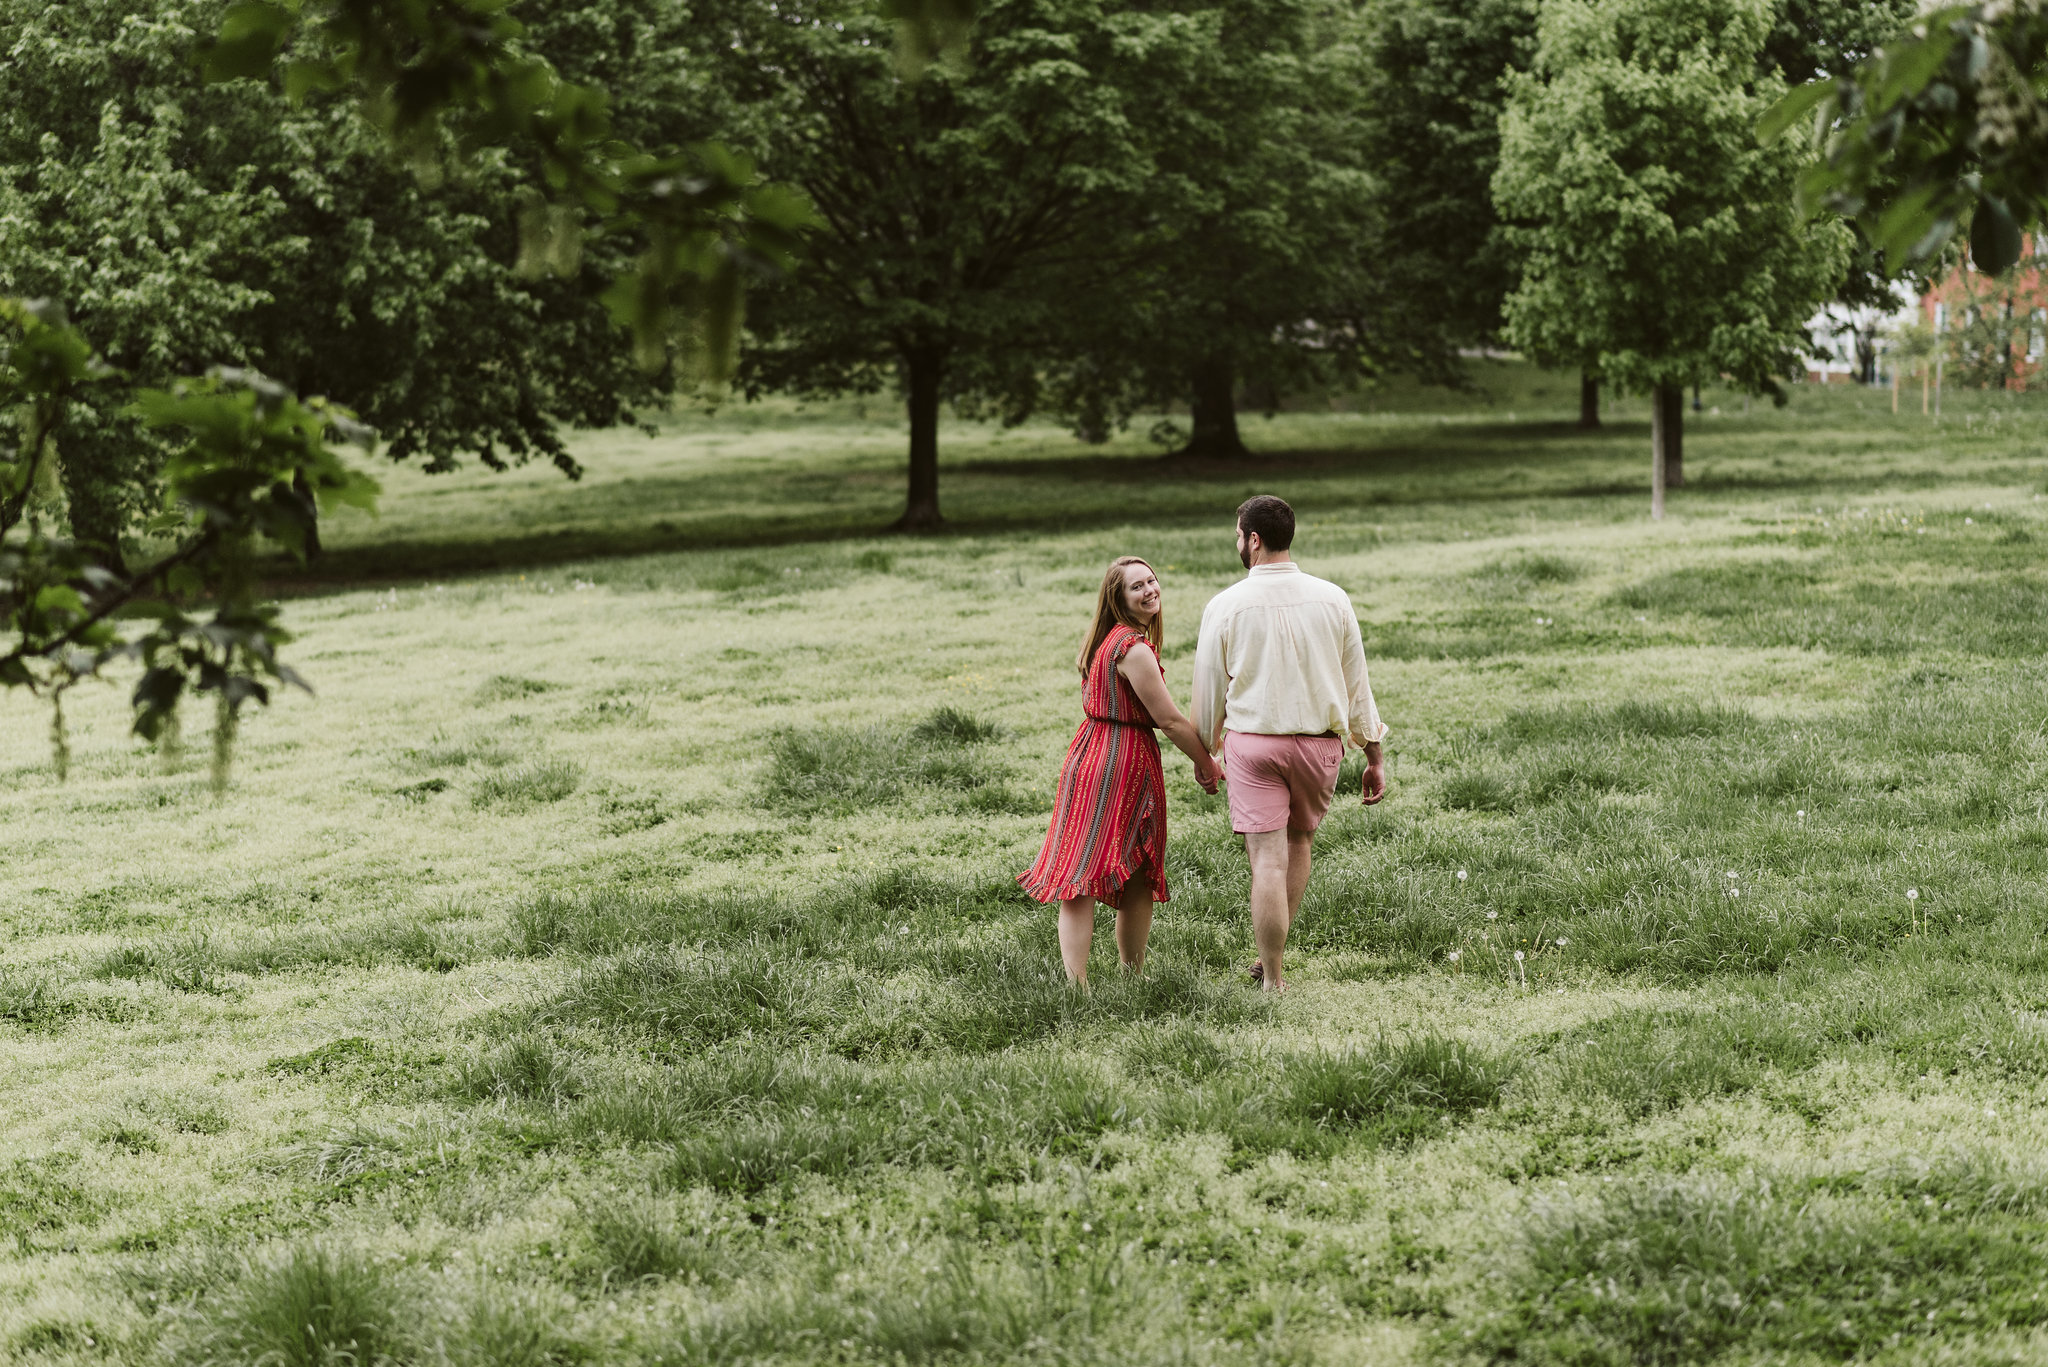 Engagement Photos, Patterson Park, Baltimore, Maryland Wedding Photographer, Casual, Fun, Nature, Bride and Groom Walking Through a Field Together, Holding Hands